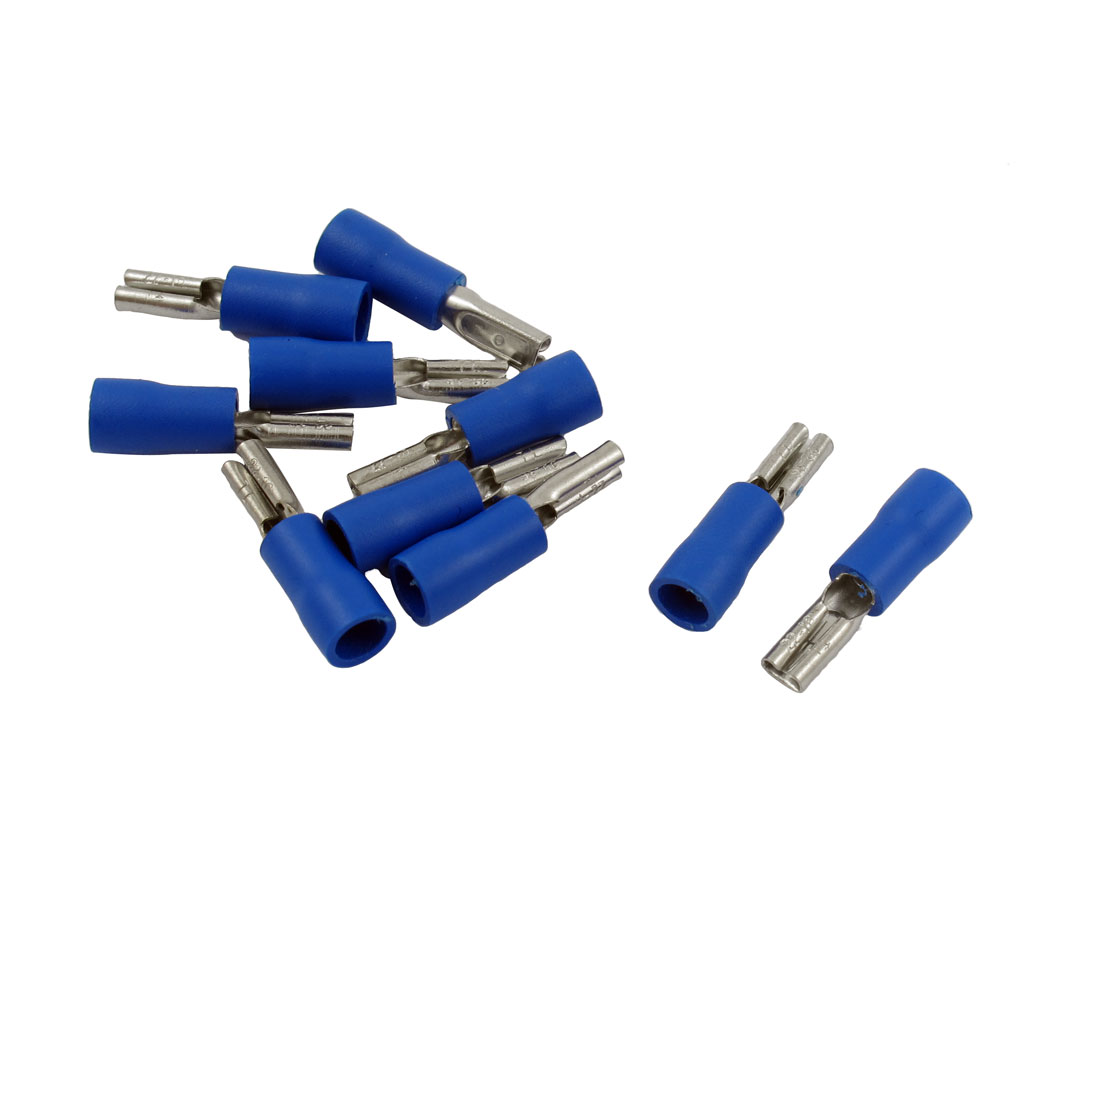 10-x-Blue-PVC-Insulating-Sleeve-Wiring-Crimp-Terminals-Cable-Lug-AWG-22-16